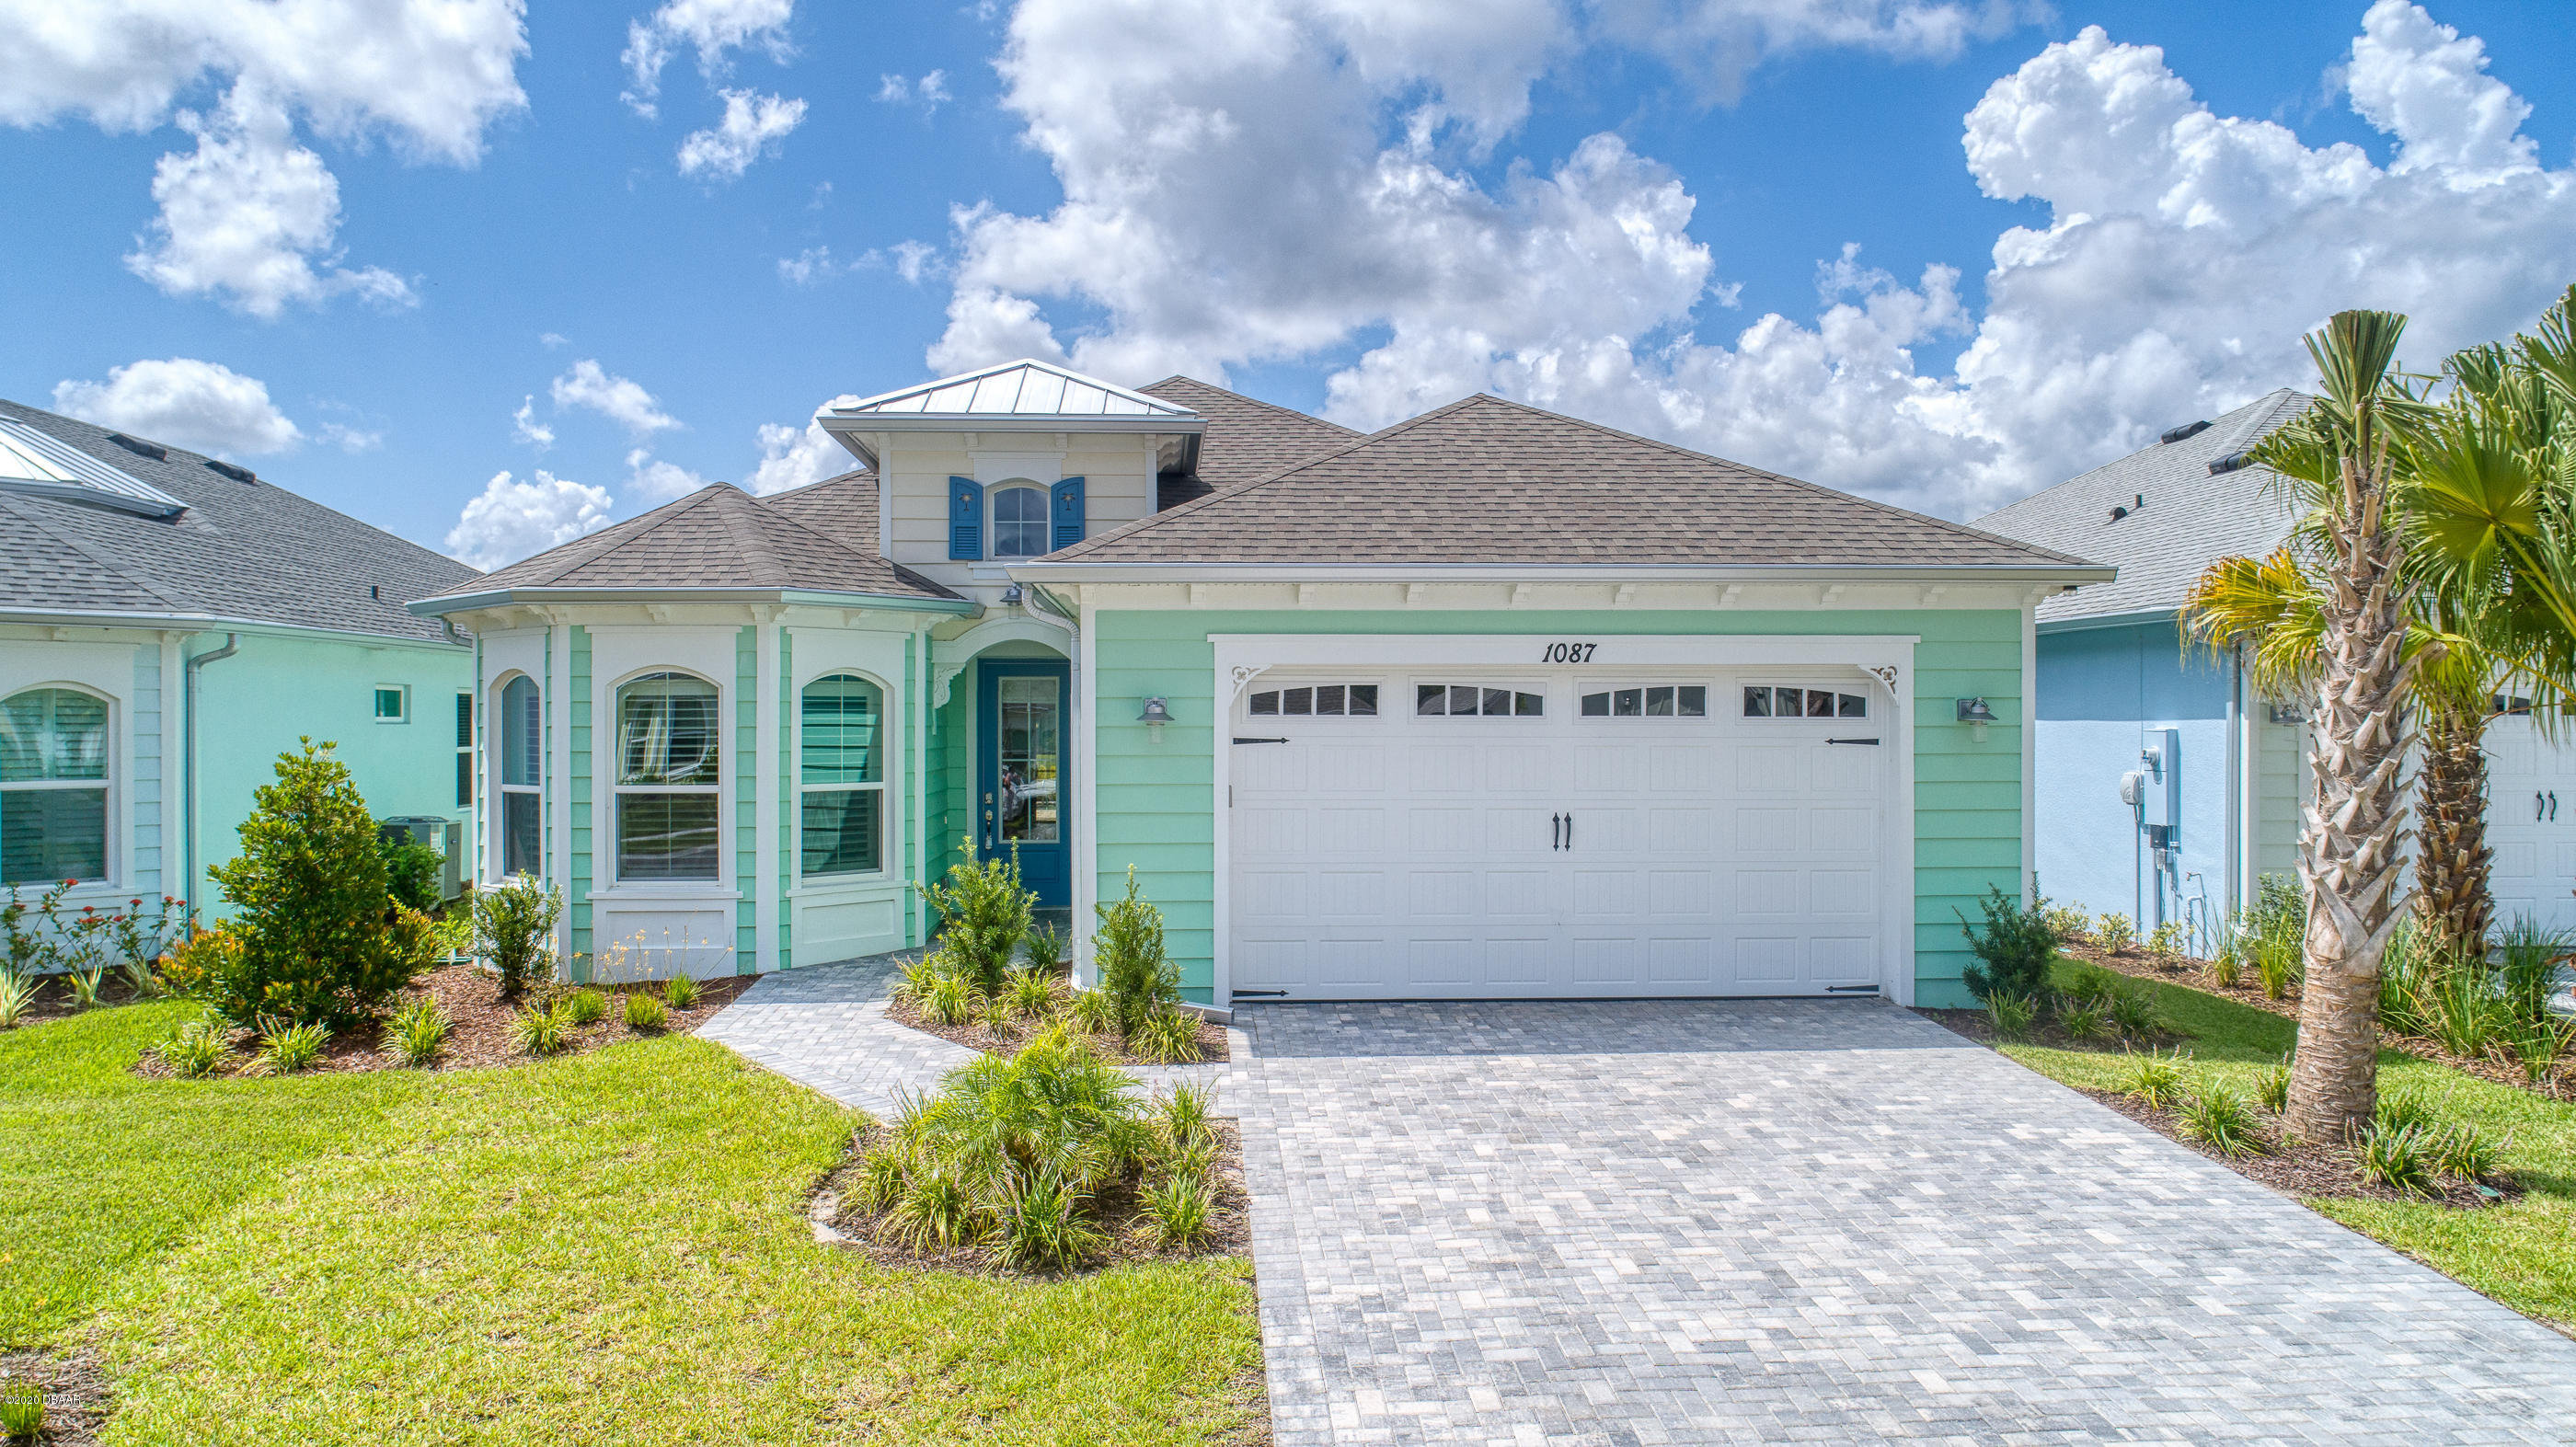 Photo of 1087 Sea Shell Court, Daytona Beach, FL 32124